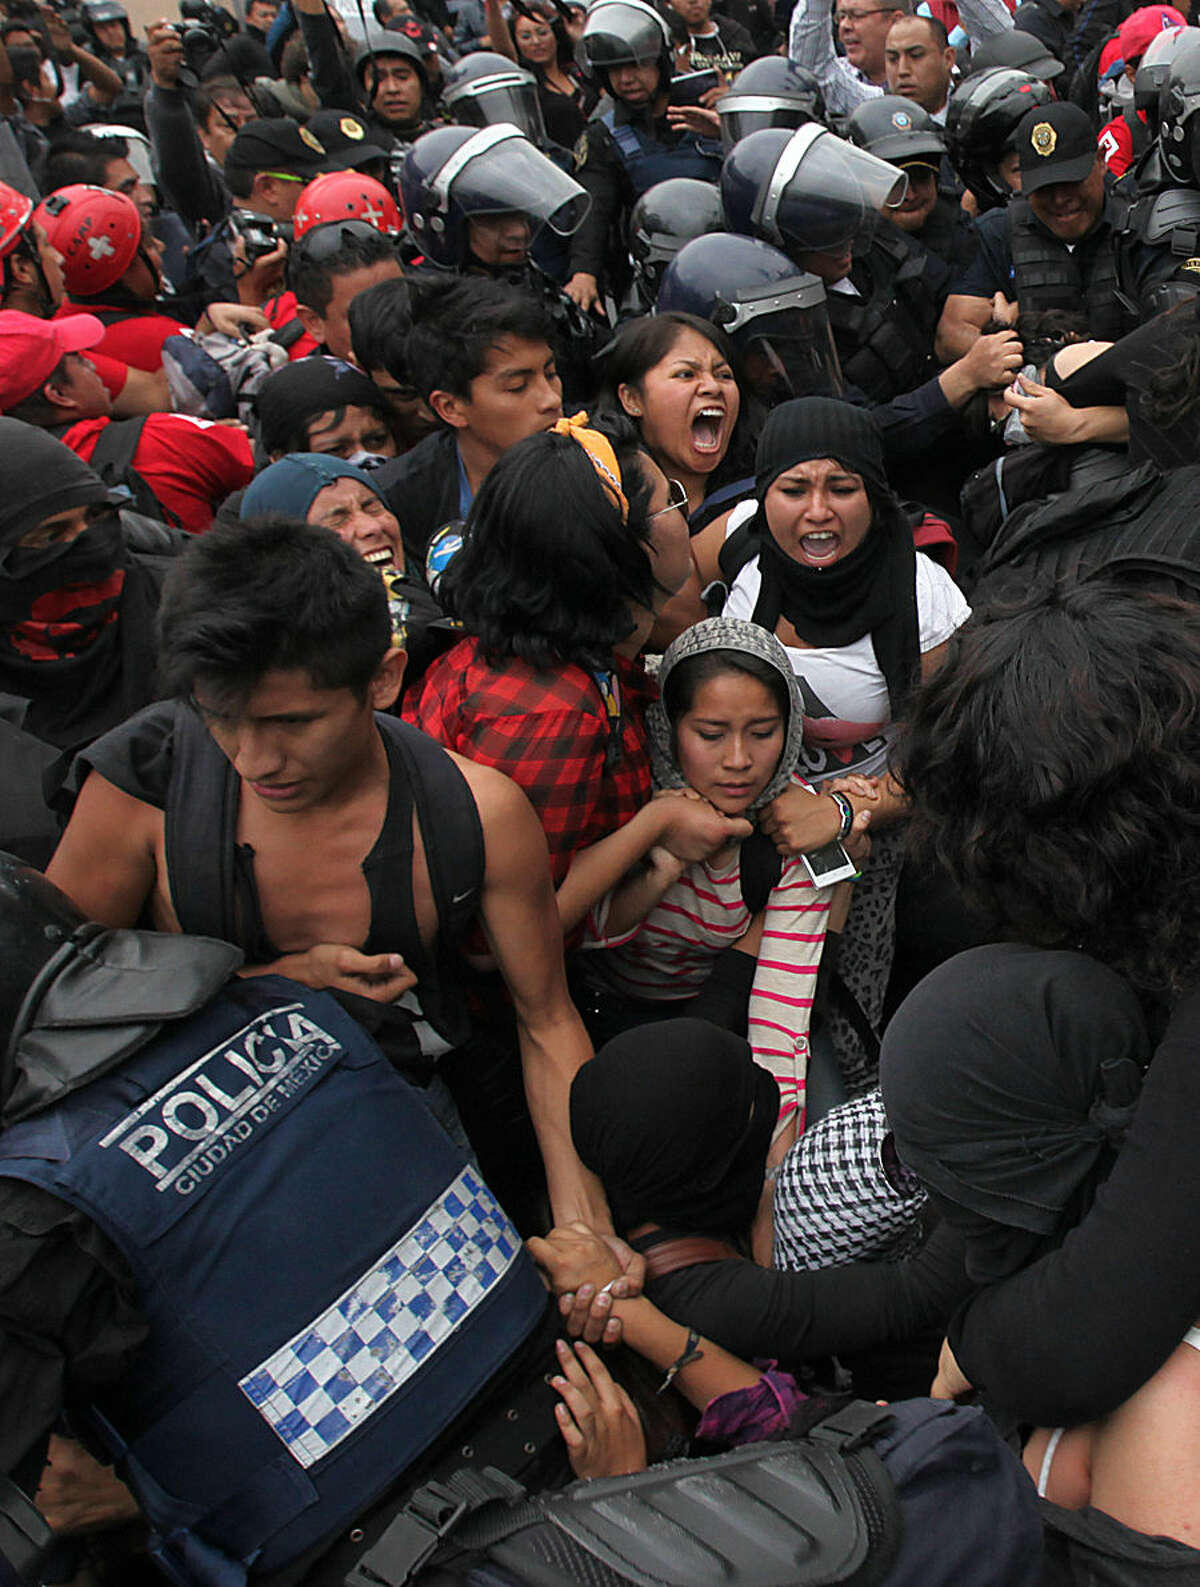 Riot police surround protesters who had clashed with police during a march near the airport in Mexico City, Thursday, Nov. 20, 2014. Protesters marched to demand authorities find 43 missing college students, trying to step up pressure on the government on a day traditionally reserved for the celebration of the 1910-17 Revolution. (AP Photo/Marco Ugarte)